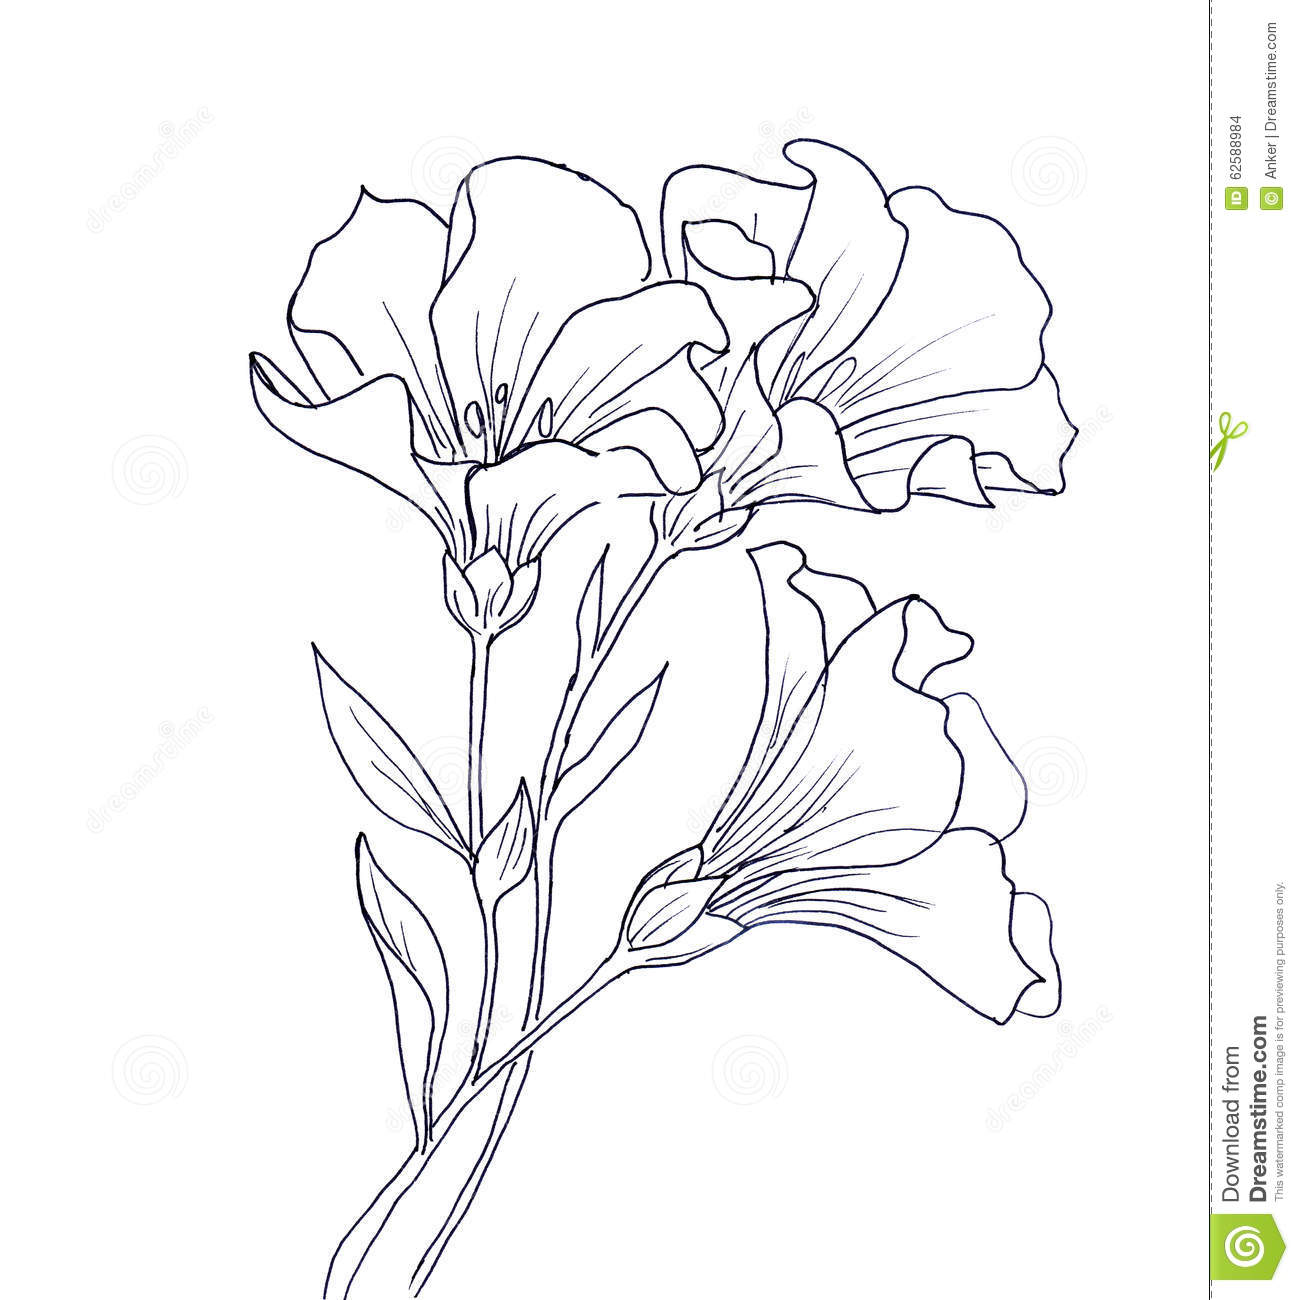 Contour Line Drawing Of A Flower : Line ink drawing of flower stock illustration